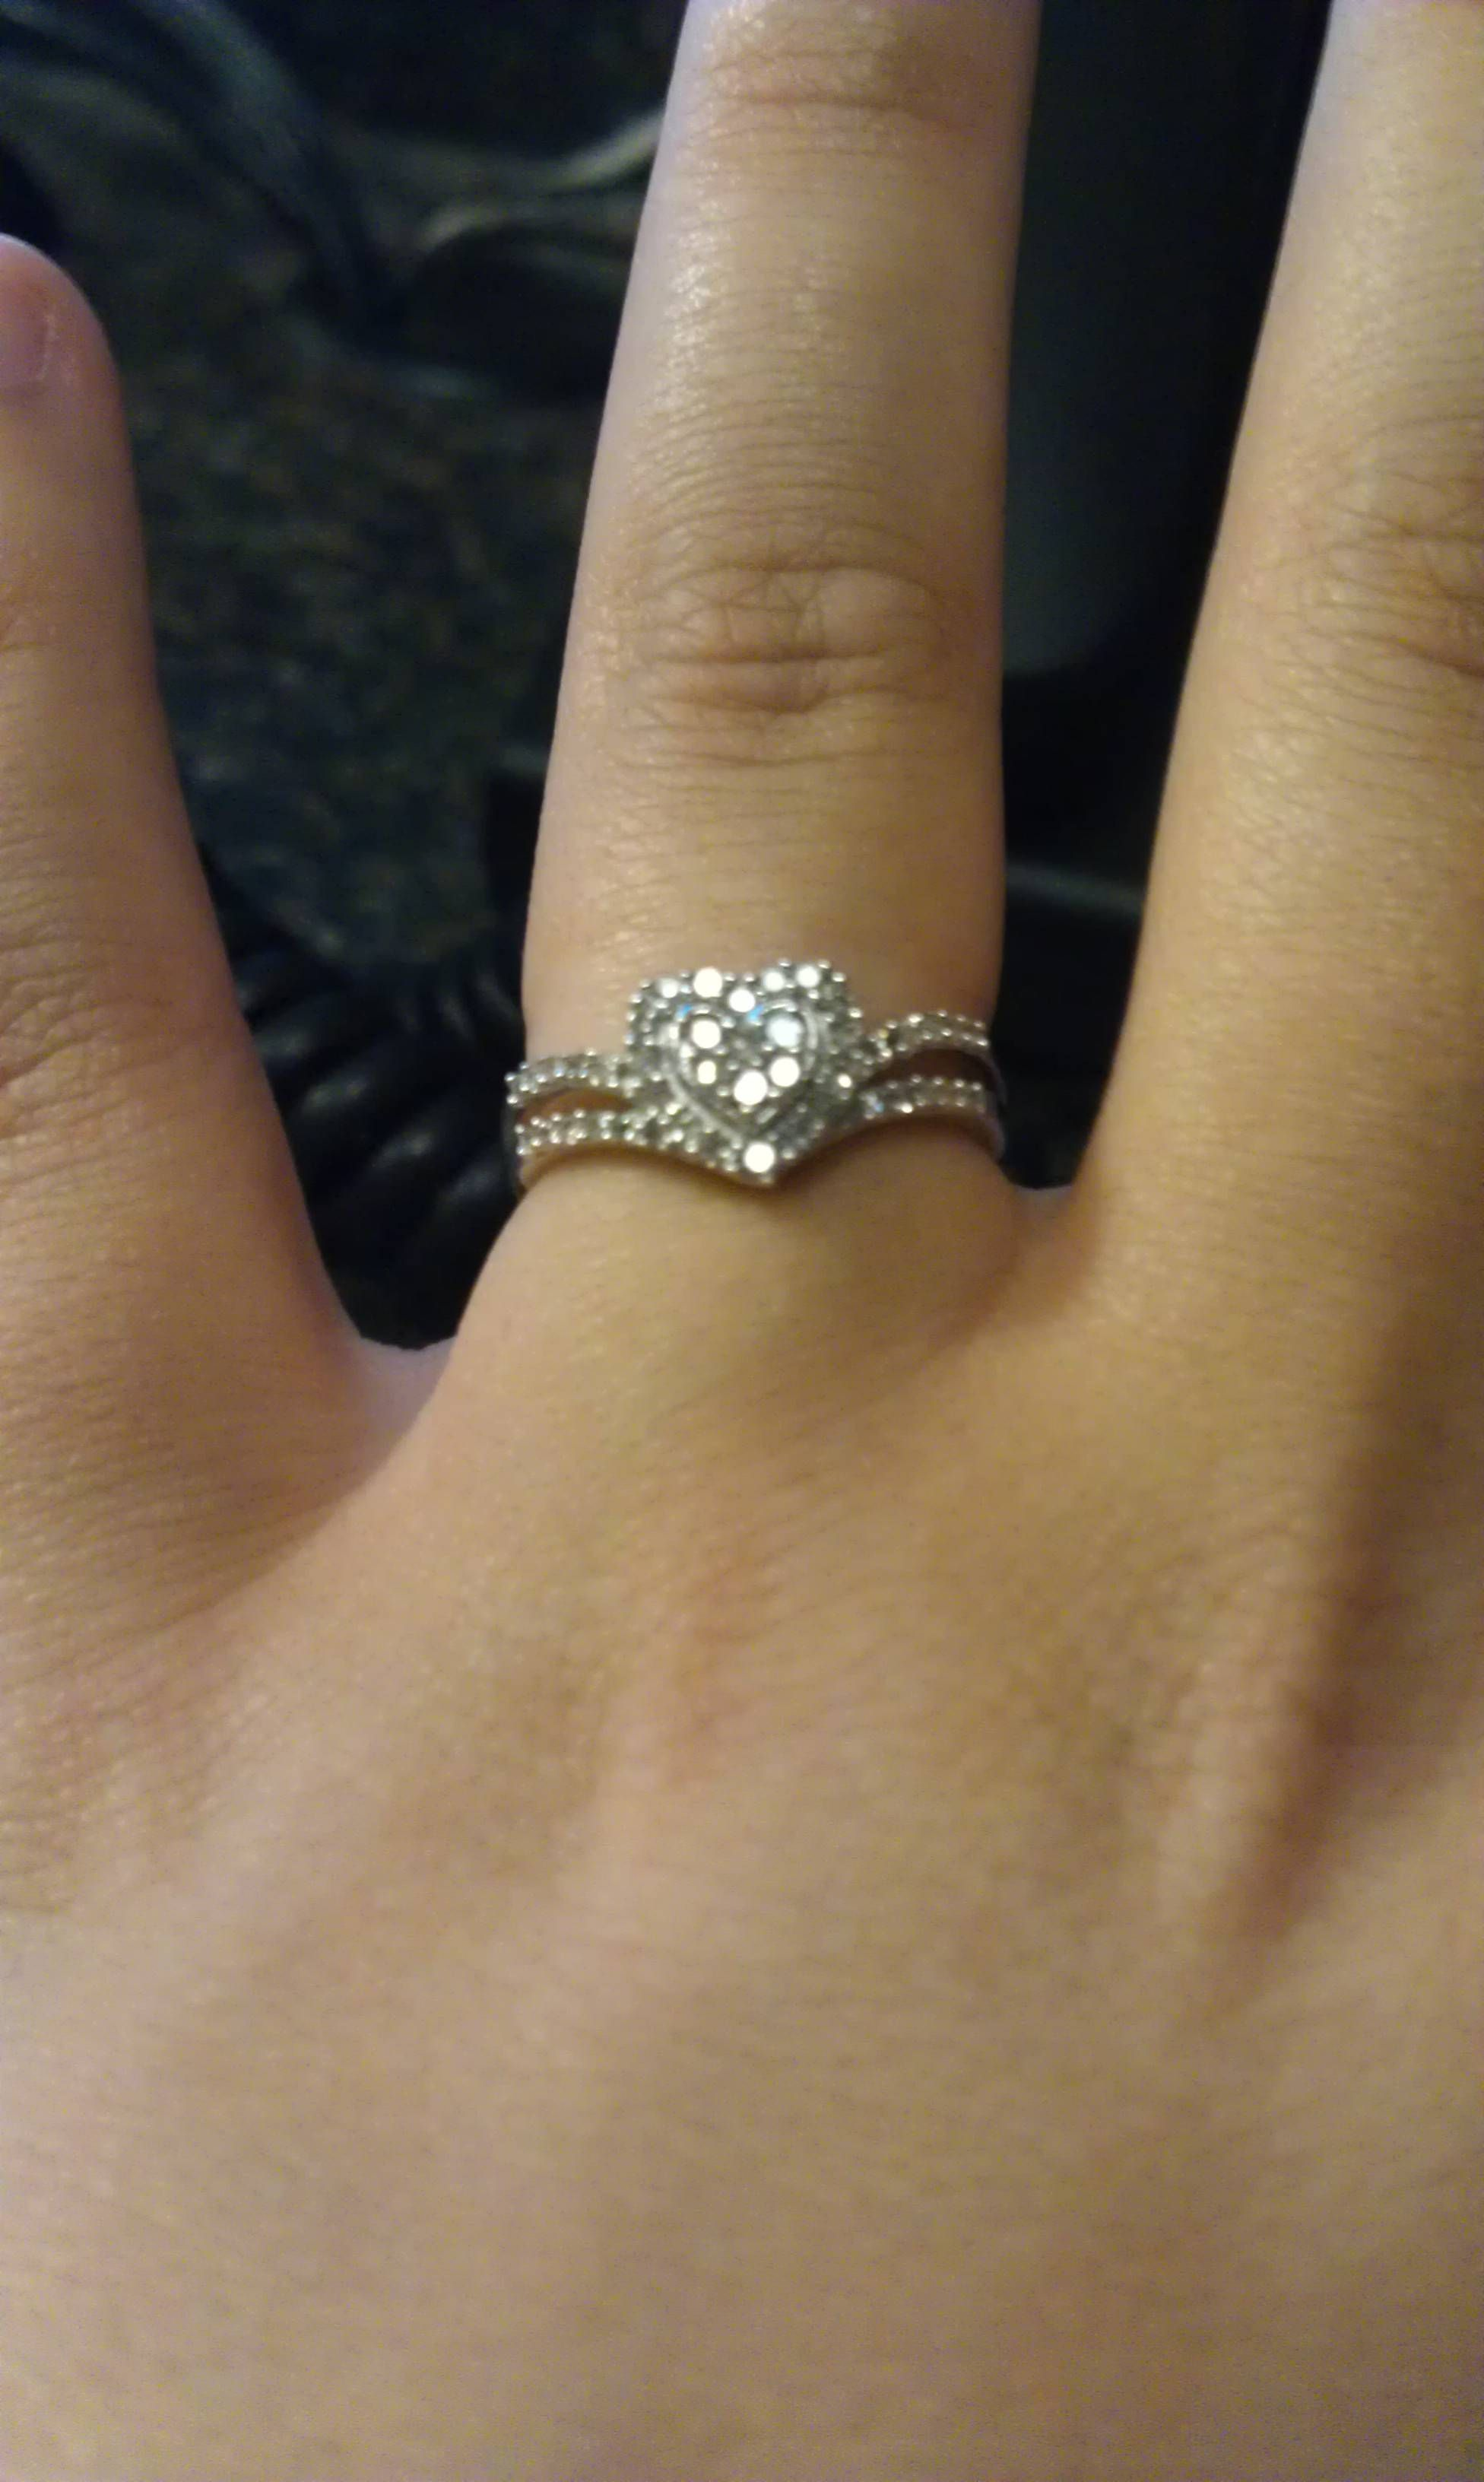 3rd diamond ring from the boyfriend <3